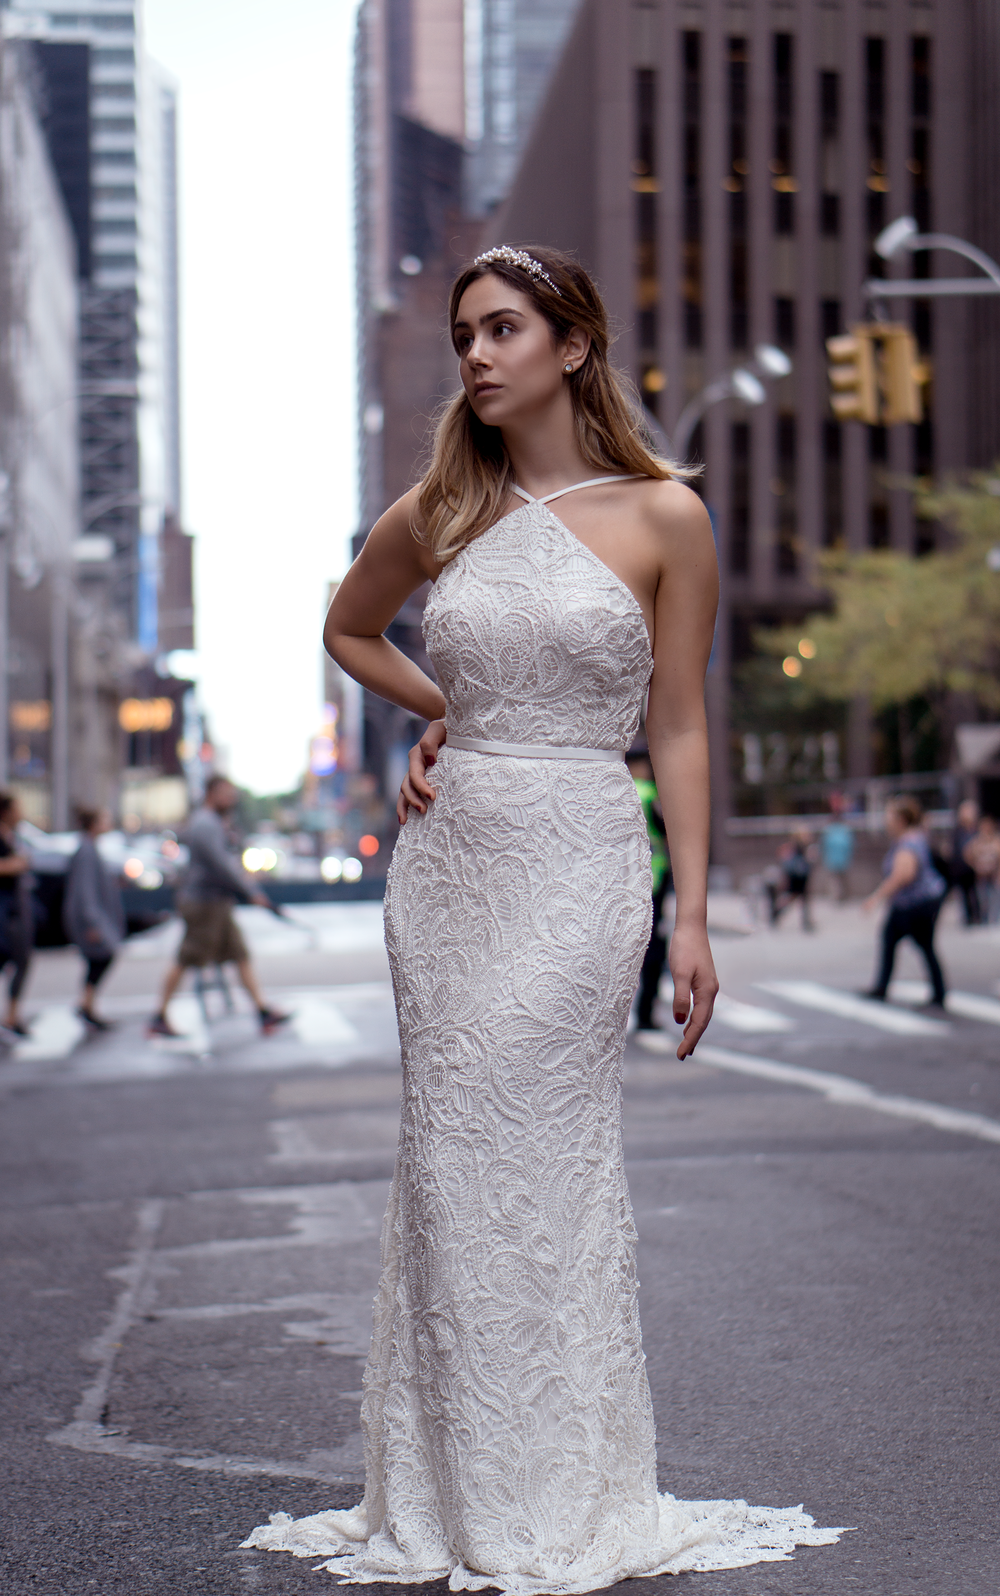 Naomi Gown - From the Fall 2018 Collection - Ivory Halter top lace bridal gown with full beading. Low back-line and fit and flare skirt. Invisible zipper closure. Stylish narrow silk sash  included. Fully lined in silk.Each dress is made by hand in the USA by our designers.  The guipure lace on this gown is Just gorgeous!